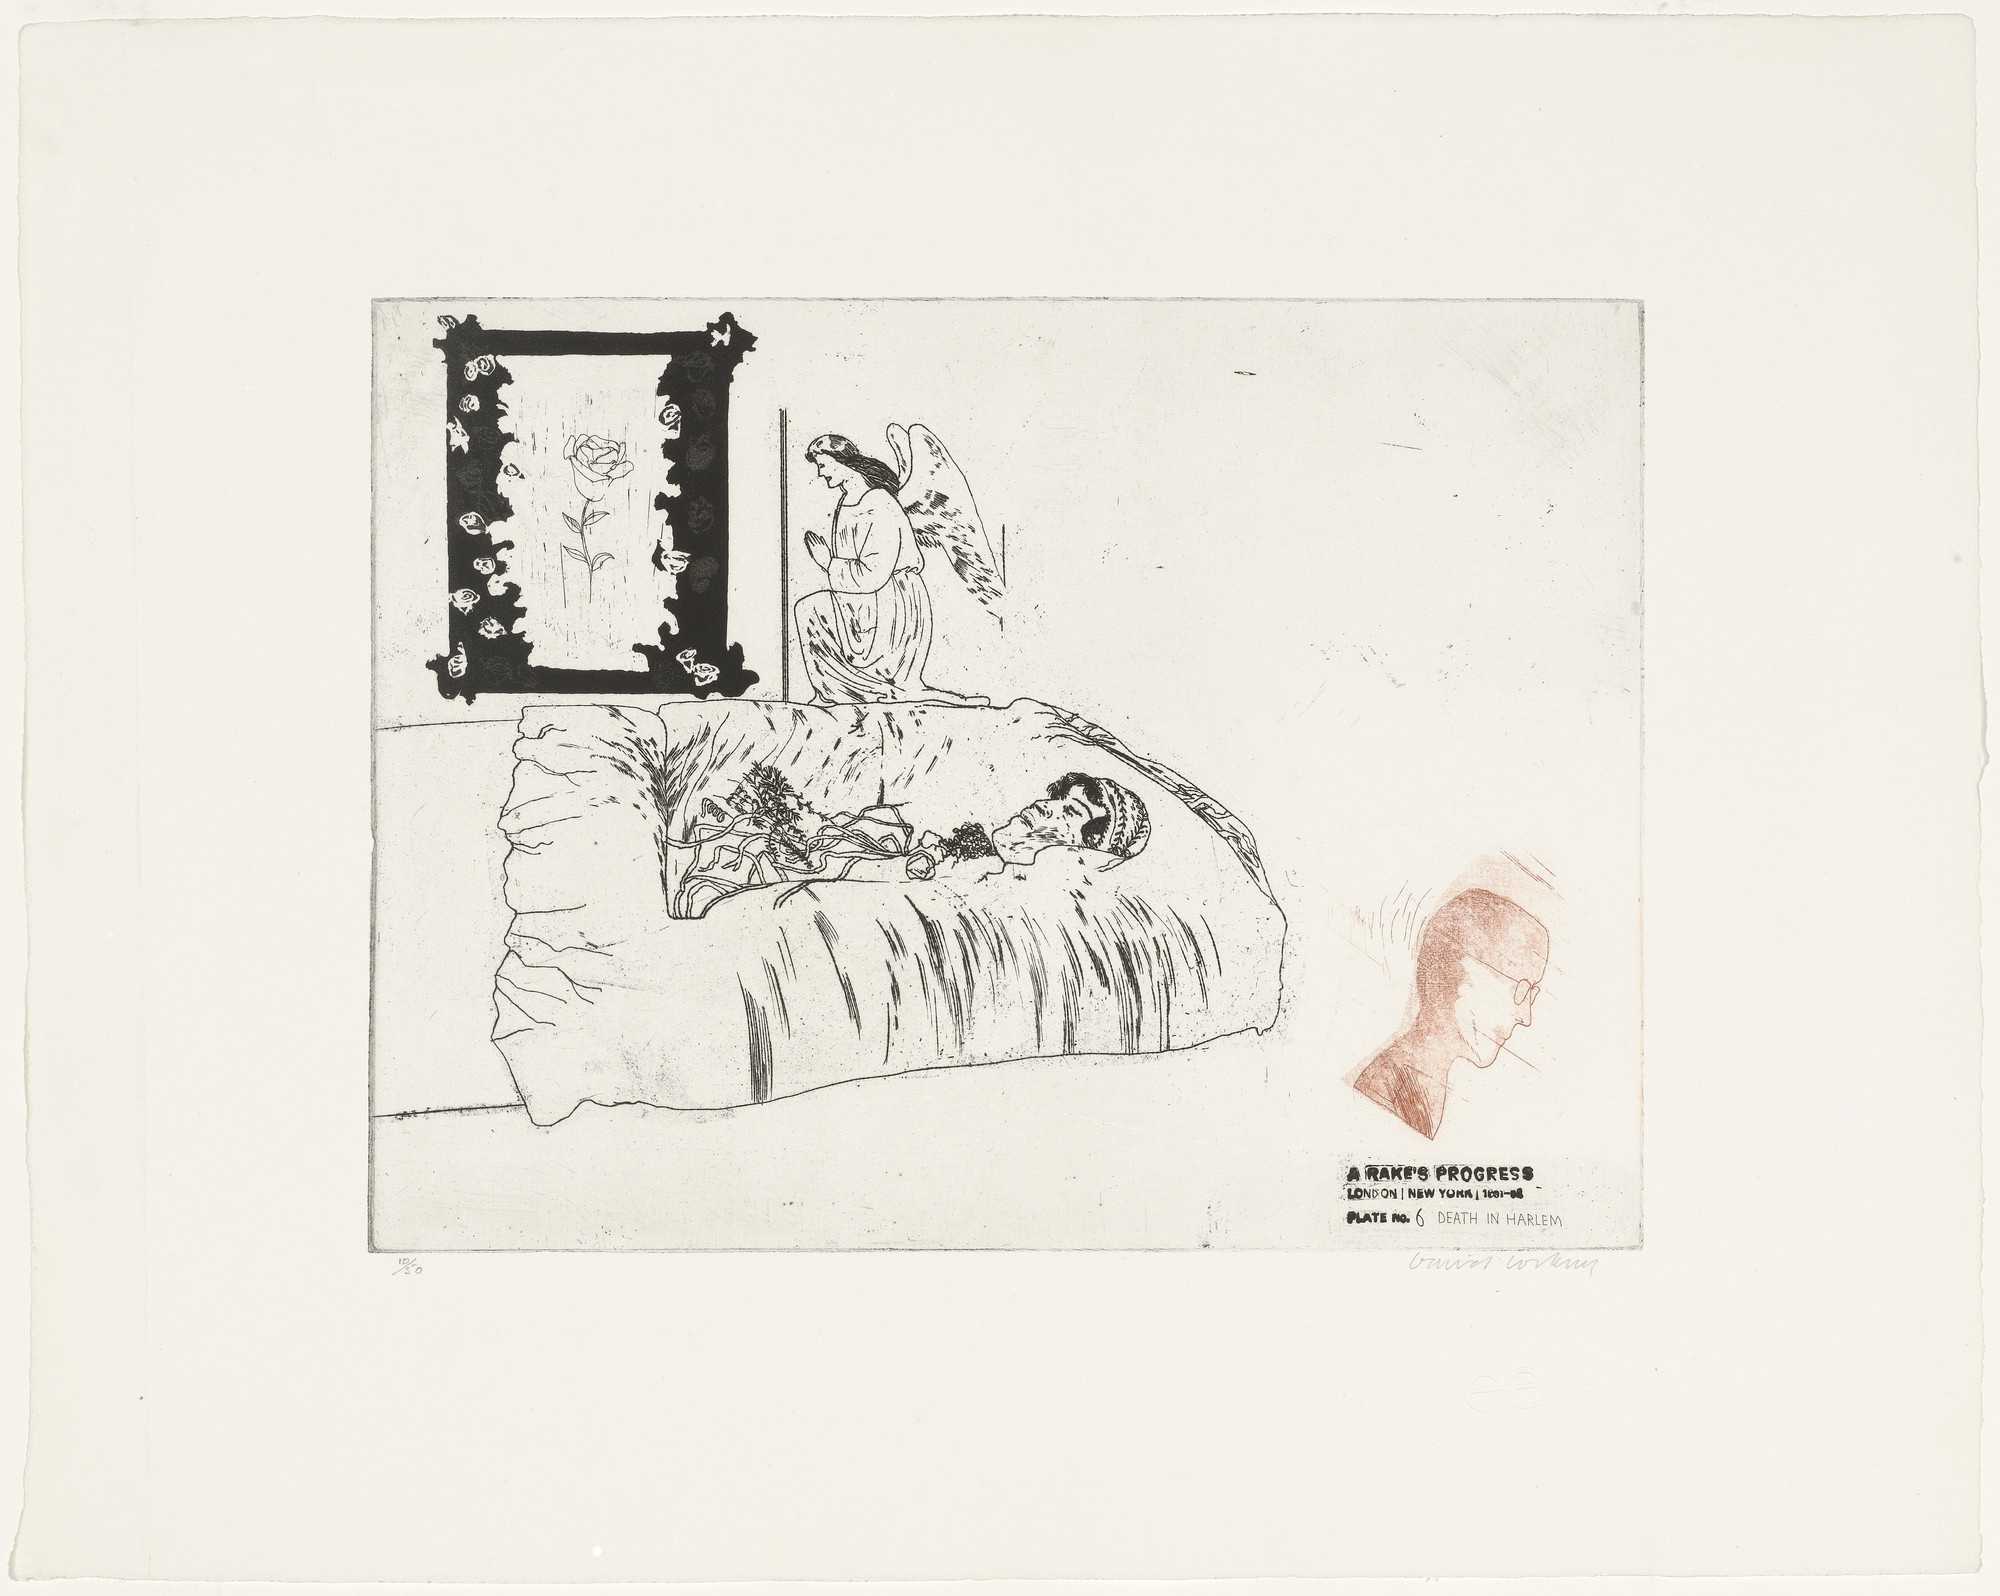 David Hockney. Death in Harlem (plate 6) from A Rake's Progress. 1961–62, published 1963